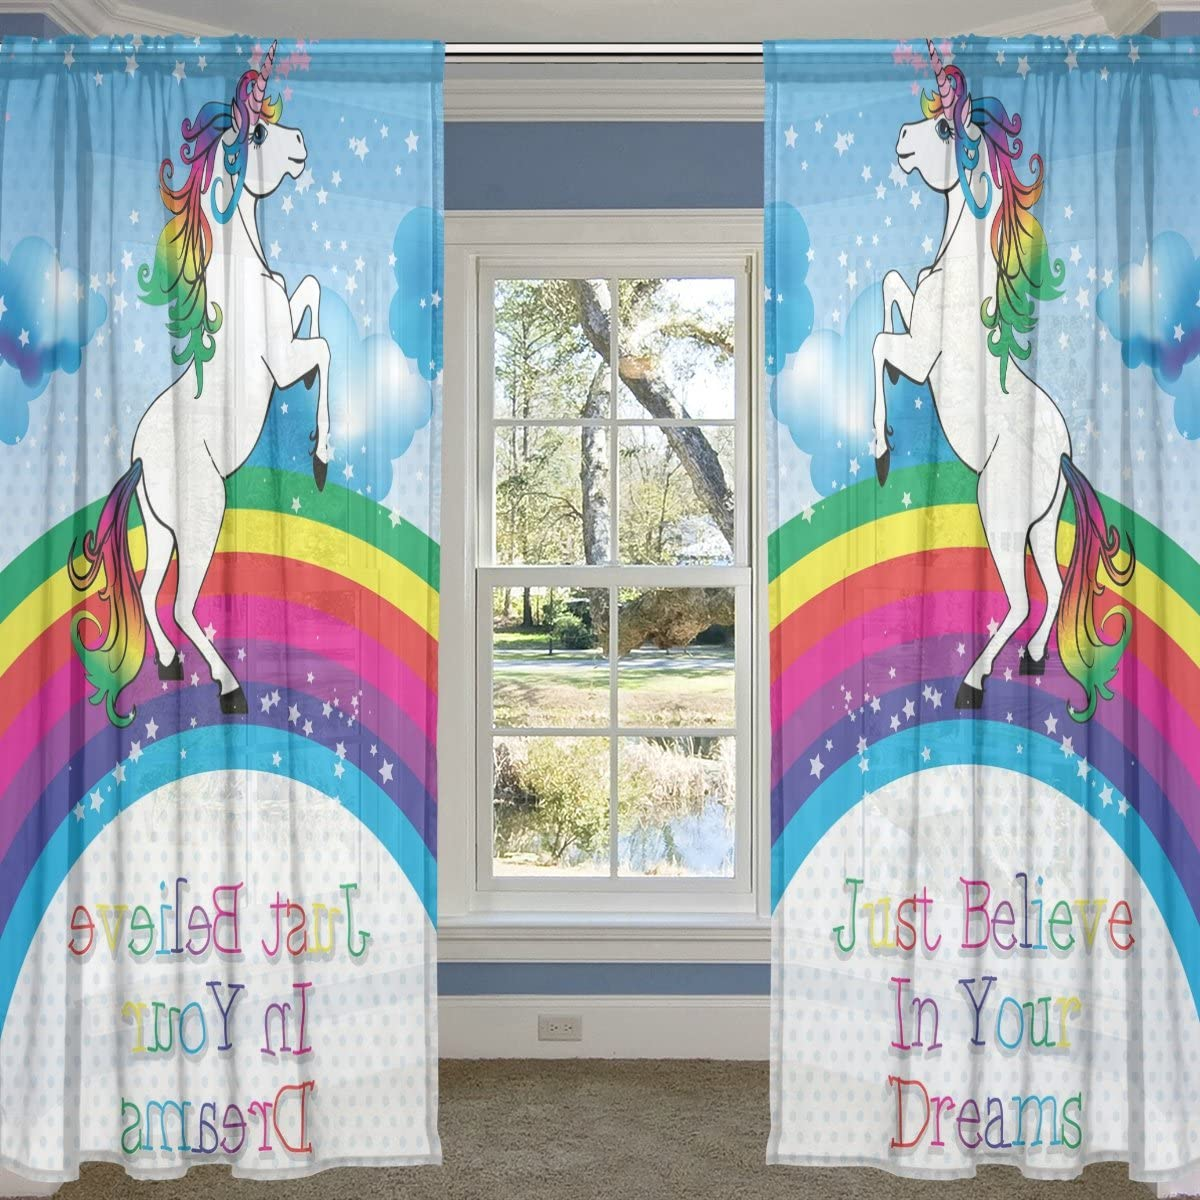 ALIREA Unicorn with A Rainbow and Motivation Quote Sheer Curtain Panels Tulle Polyester Voile Window Treatment Panel Curtains for Bedroom Living Room Home Decor, 55×84 inches, 2 Panels Set